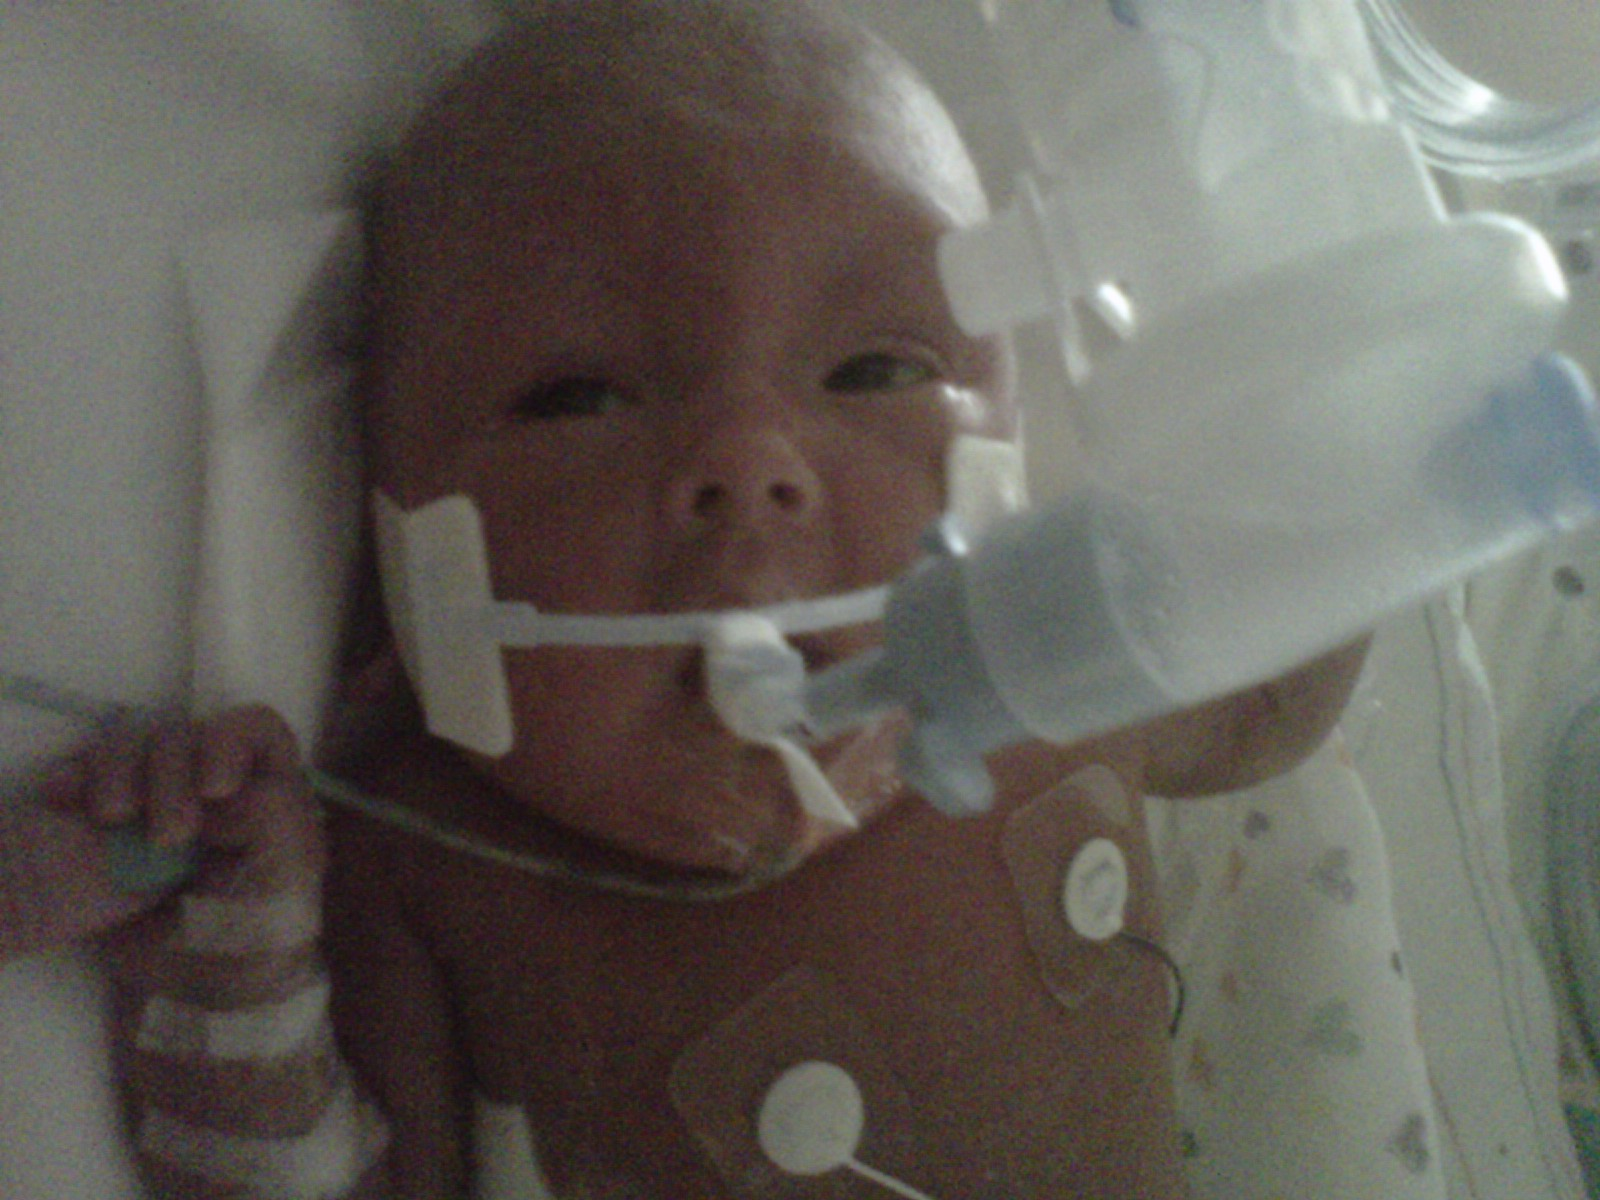 Our Little Remy February 23rd 2011 After A Routine